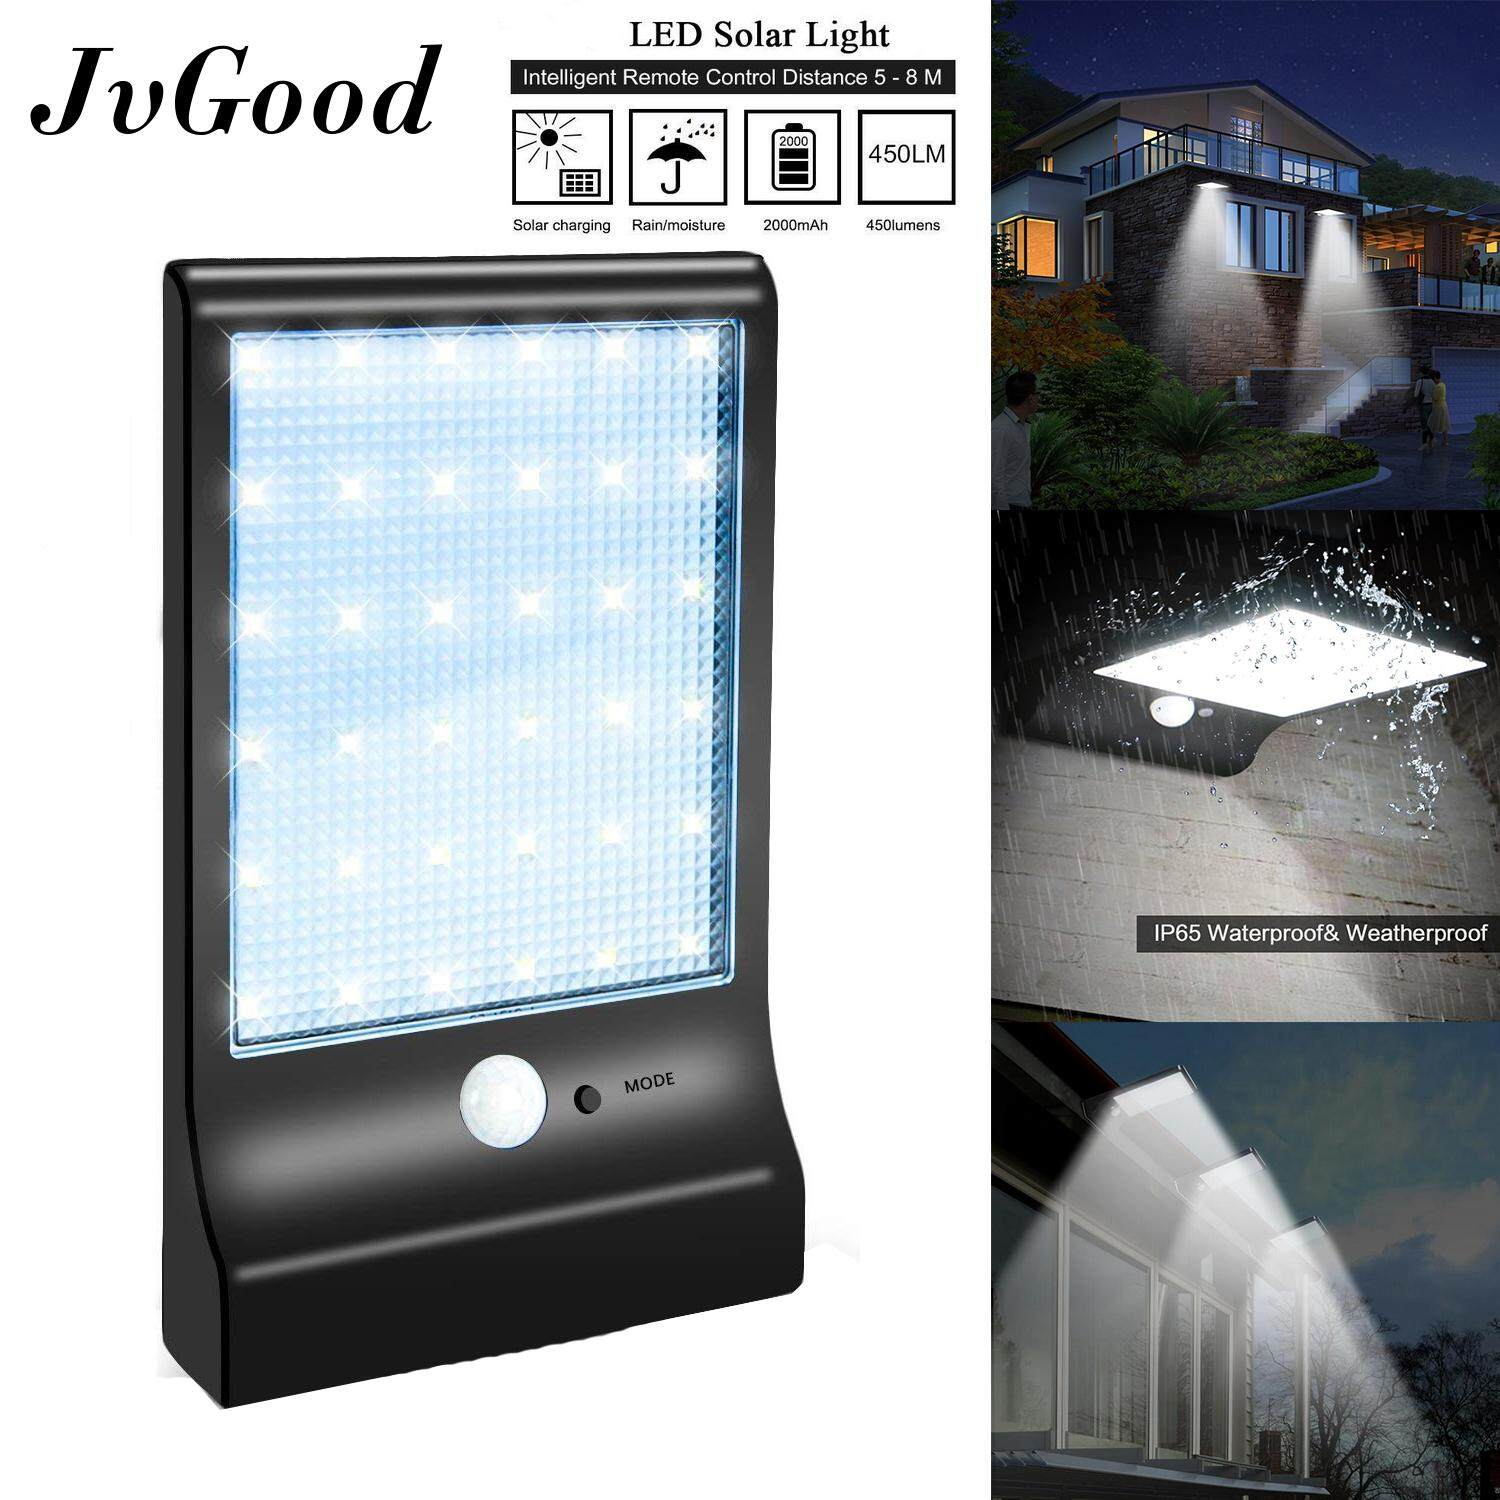 JvGood 36 LED Solar lights Outdoor Lighting Wall Power Street Light Motion Sensor Detector Light Security Lamp Garden 450LM